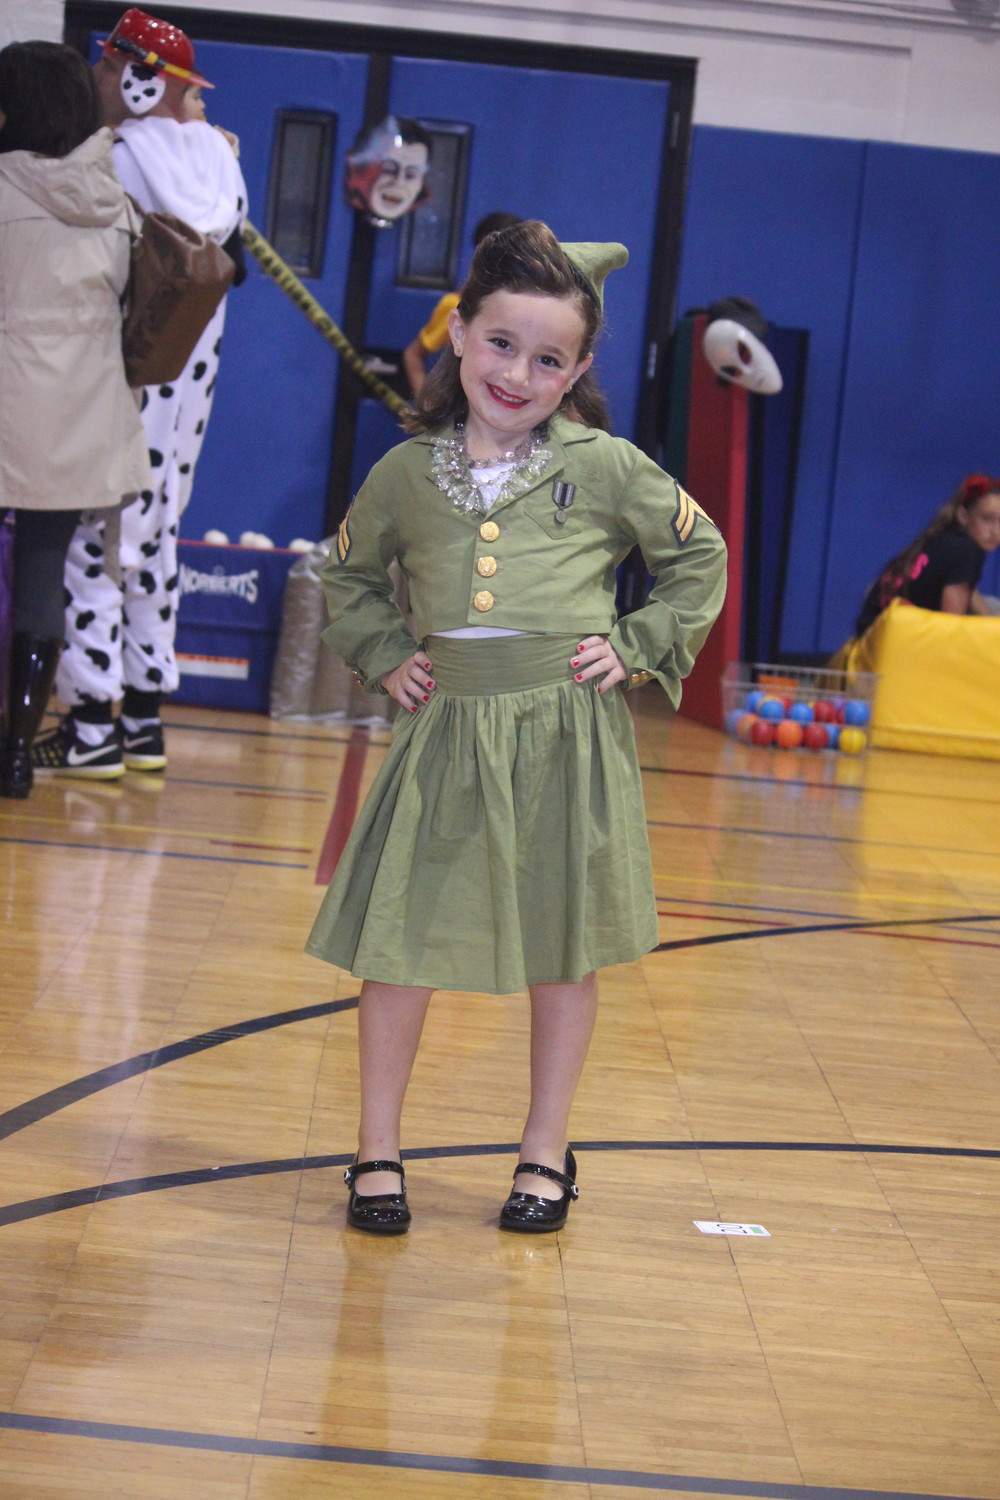 Six-year-old Hope Brugge struck a pose in her vintage Army girl costume.